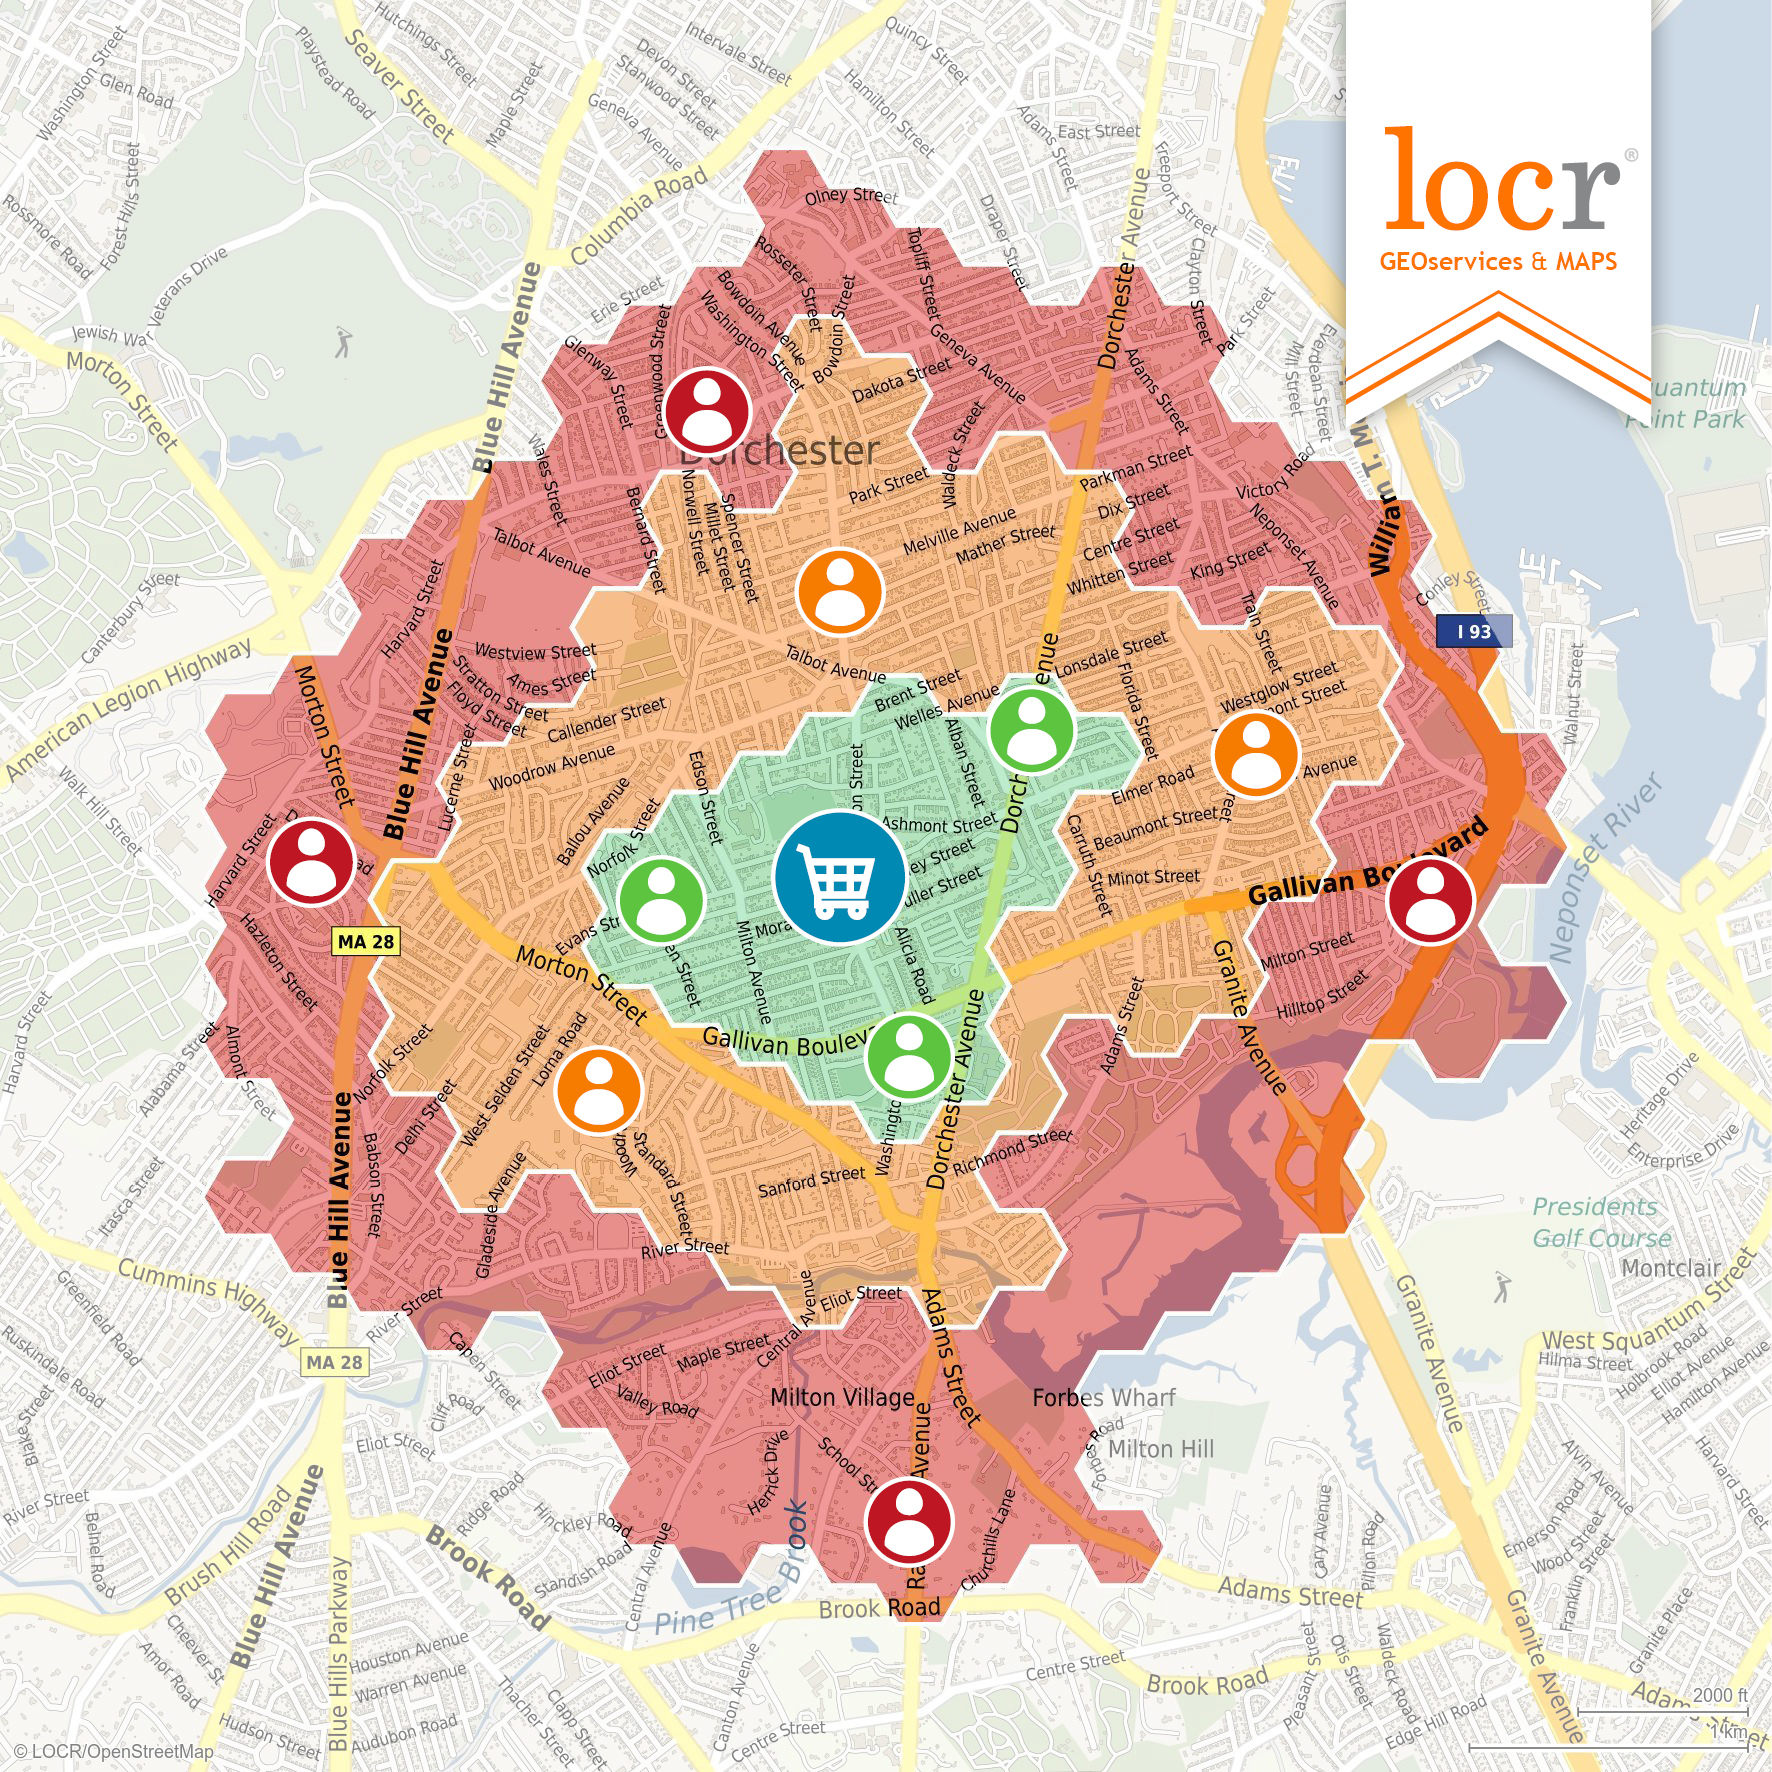 locr GEOservices Heatmap Graphic